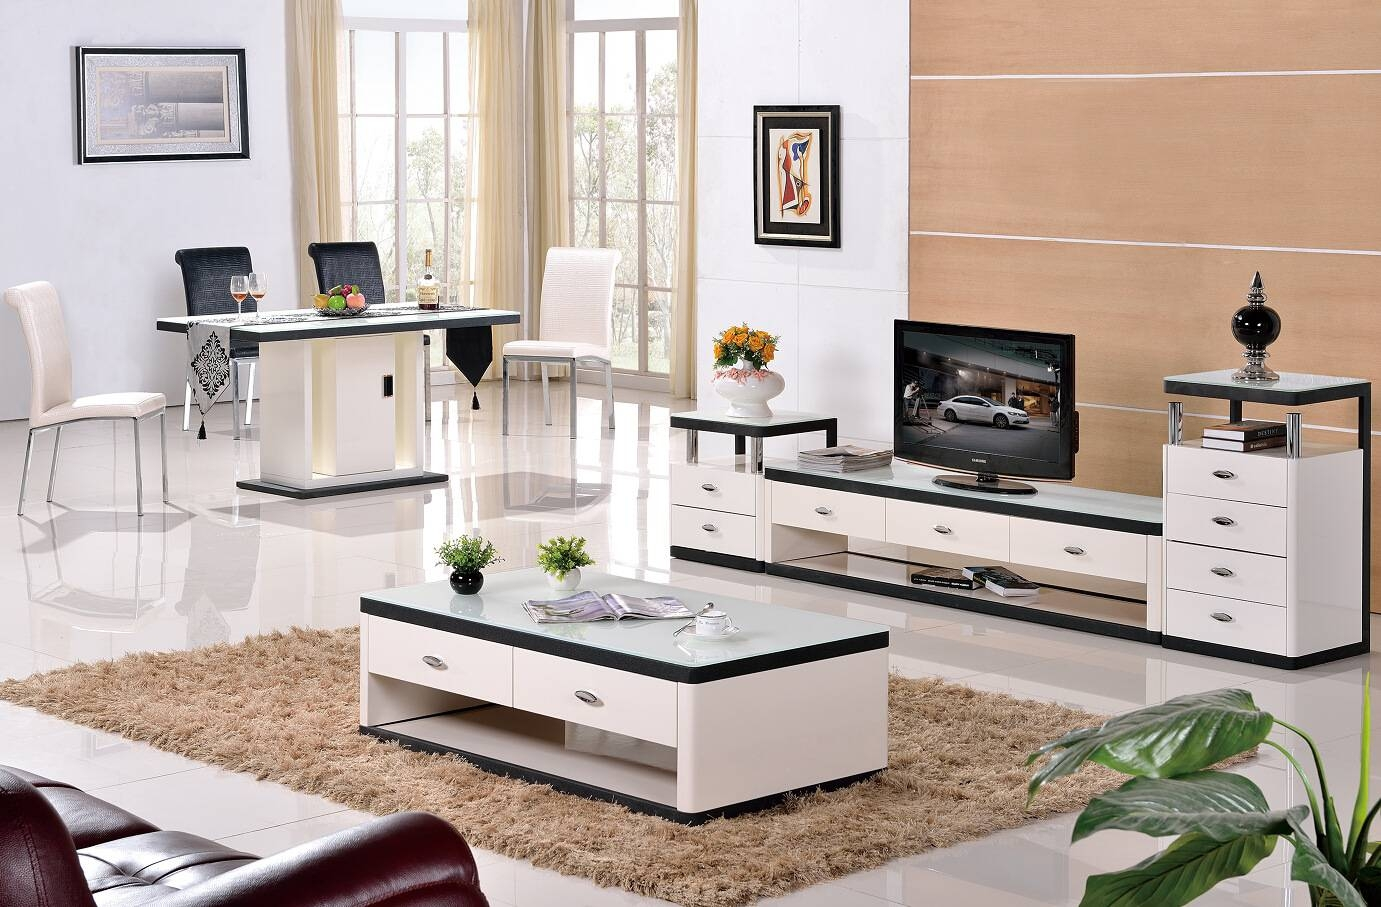 Grade Stainless Steel Paint Glass Coffee Table Tv Cabinet Fashion within Tv Cabinets And Coffee Table Sets (Image 11 of 15)